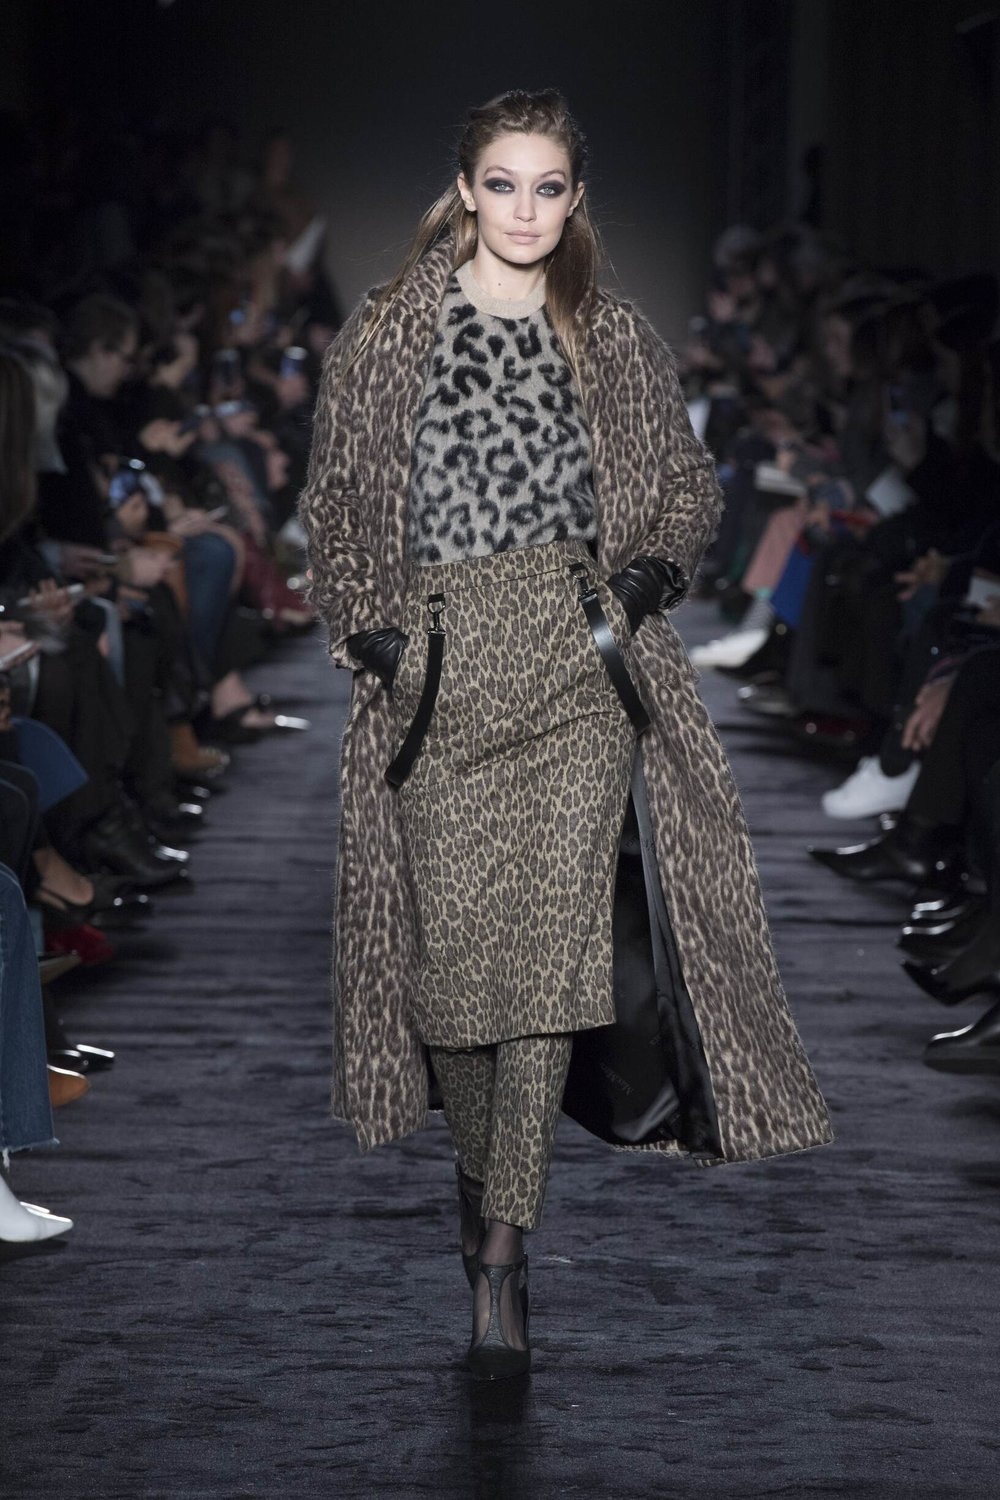 Model-Fashion-Show-Max-Mara - GIGI.jpg